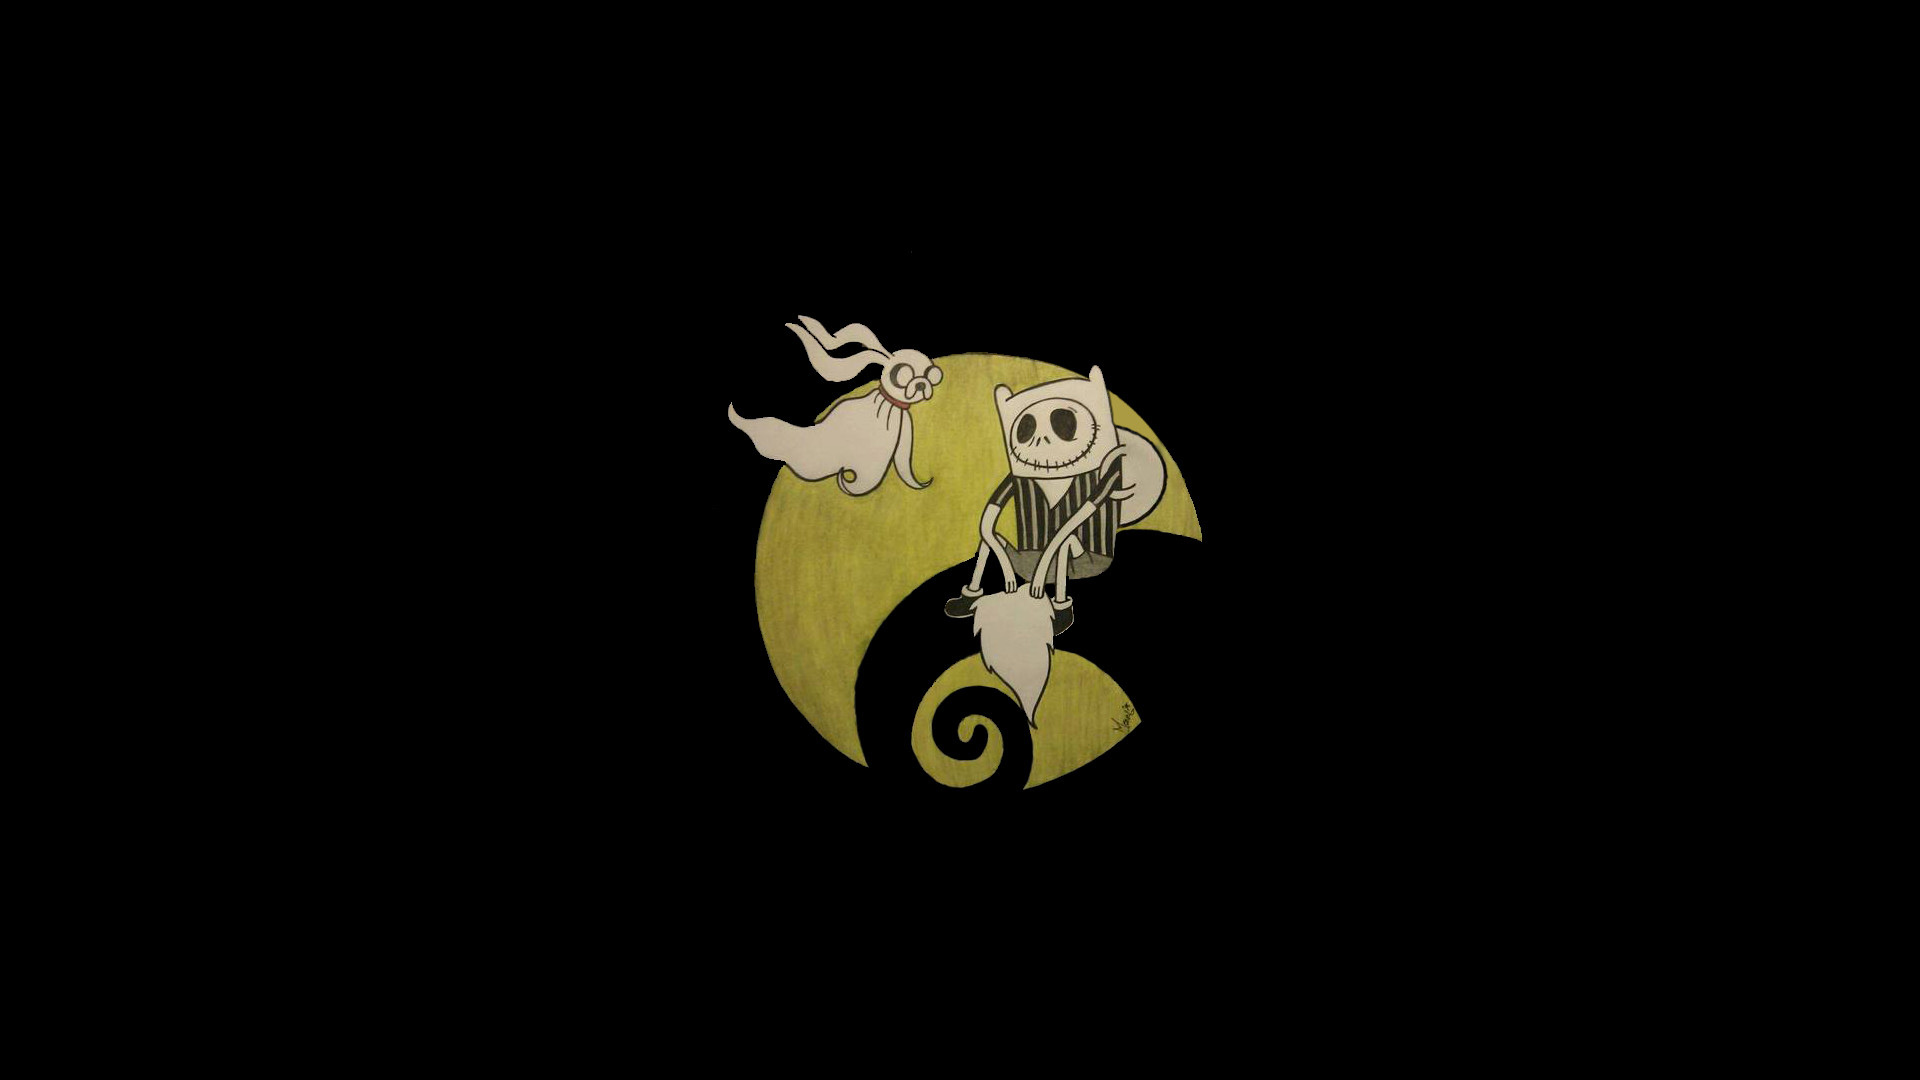 Nightmare Before Christmas Wallpaper 60 Images